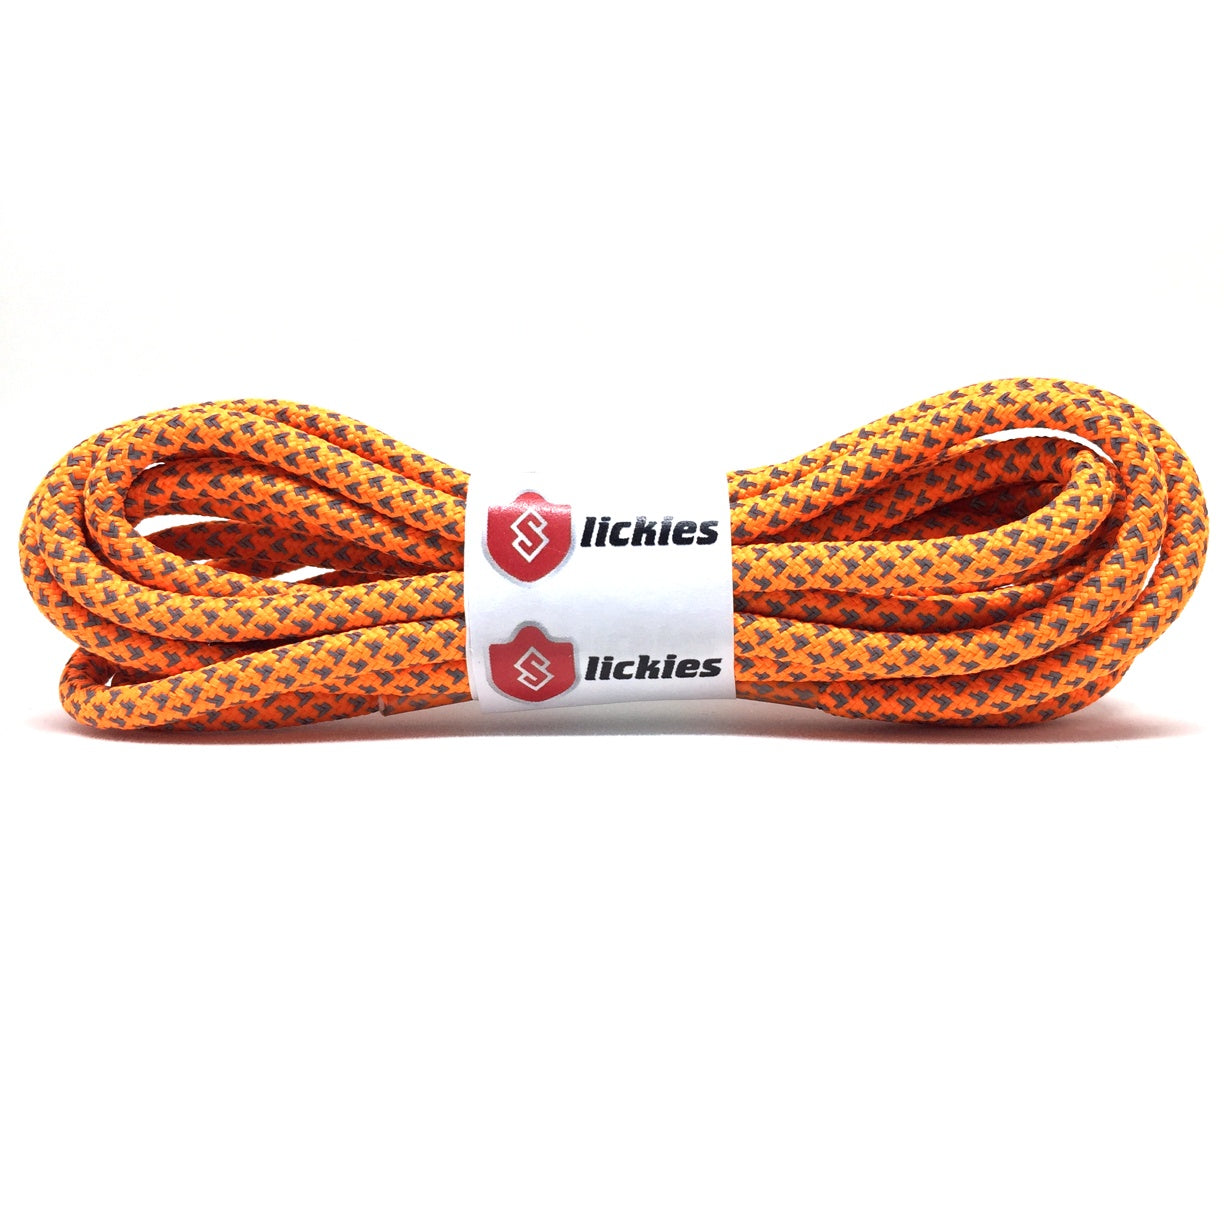 3M Rope - 3M Reflective Rope Laces - Vibrant Orange